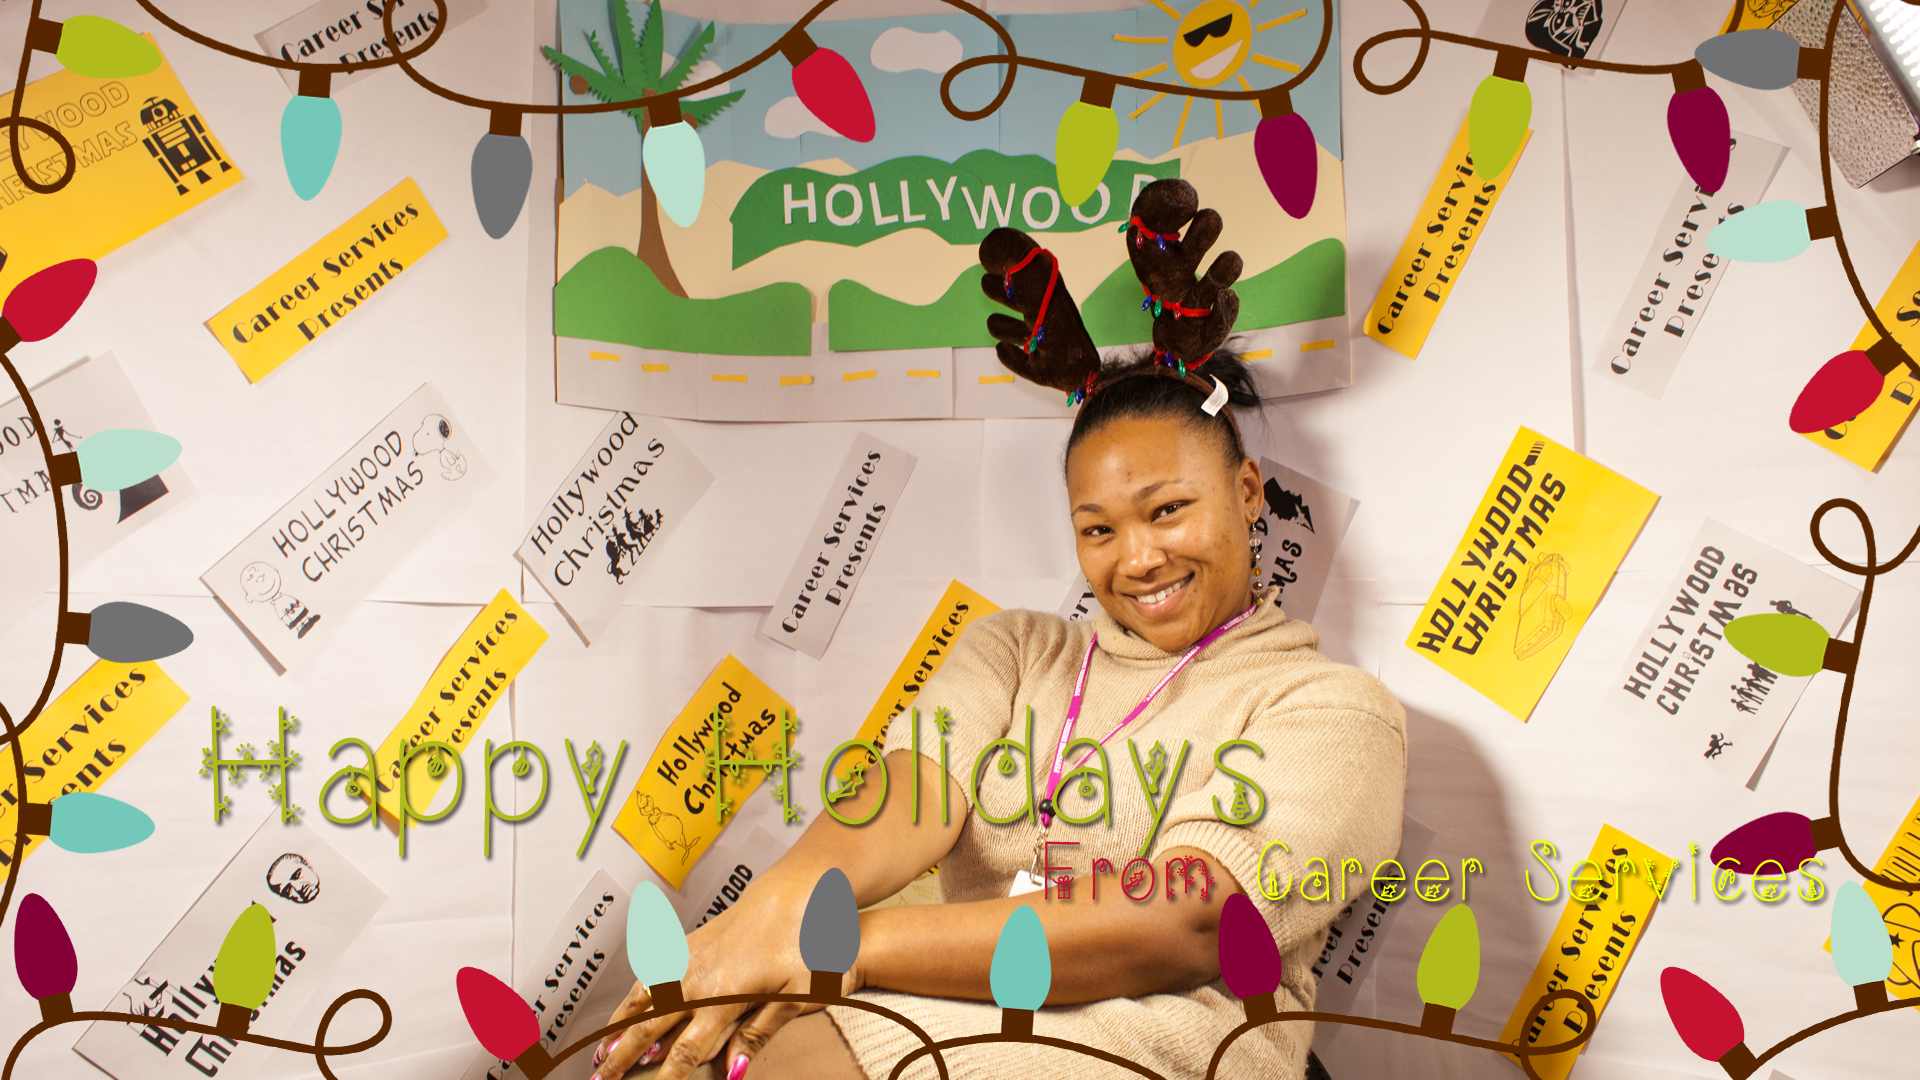 Smiling woman at 2013 Hollywood Christmas party - Pepperdine GSEP